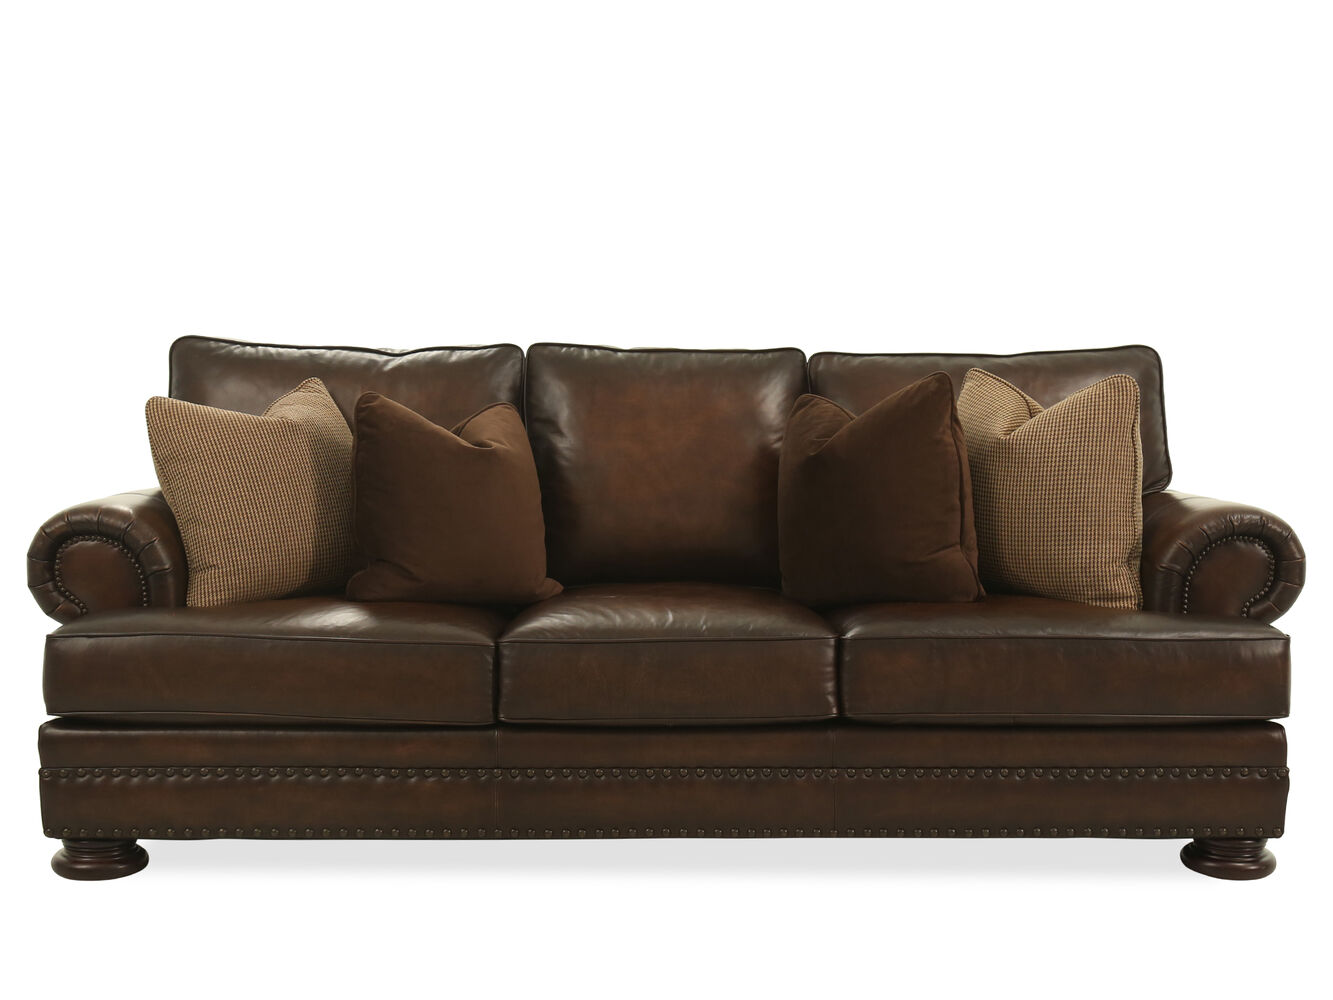 Mathis brothers leather sofas henredon leather sofa for Bernhardt furniture